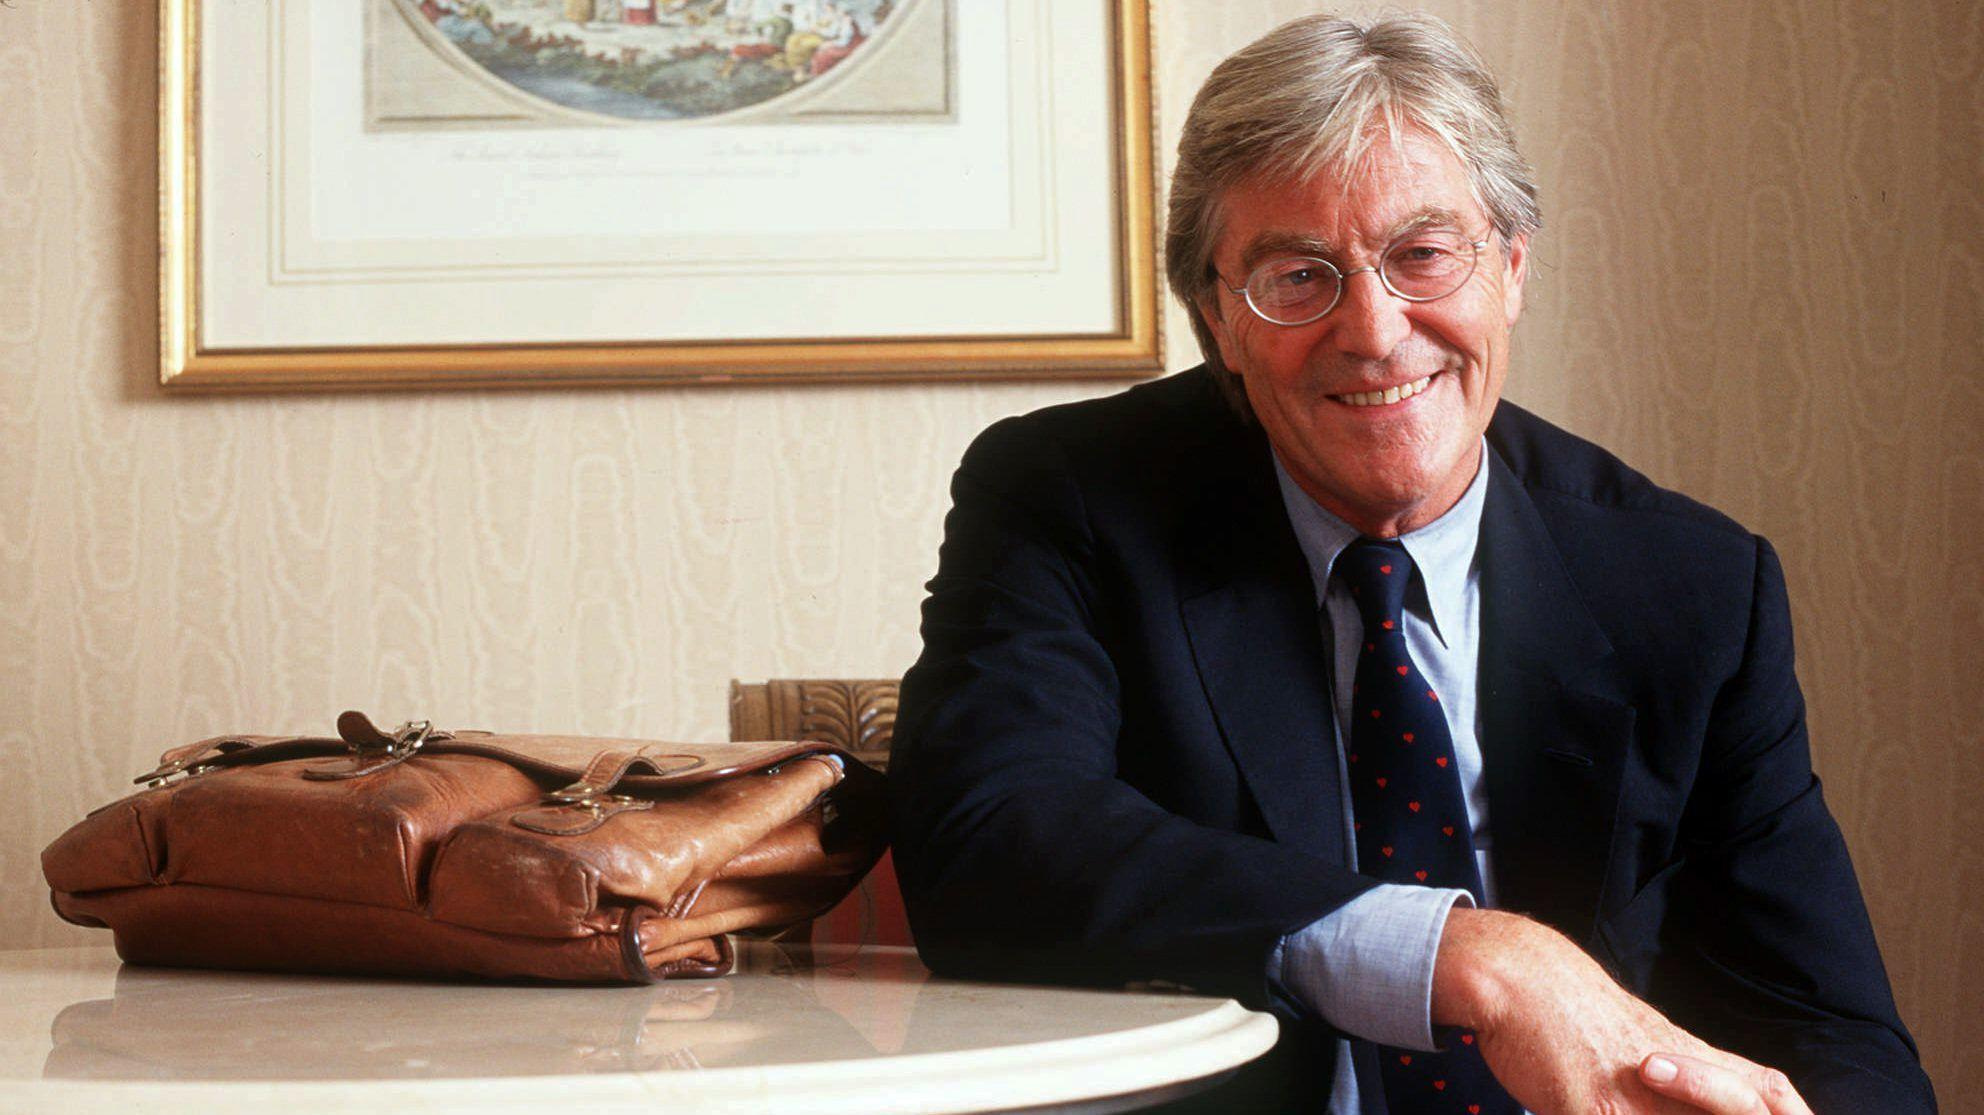 Peter Mayle, author of 'A Year in Provence,' dead at 78